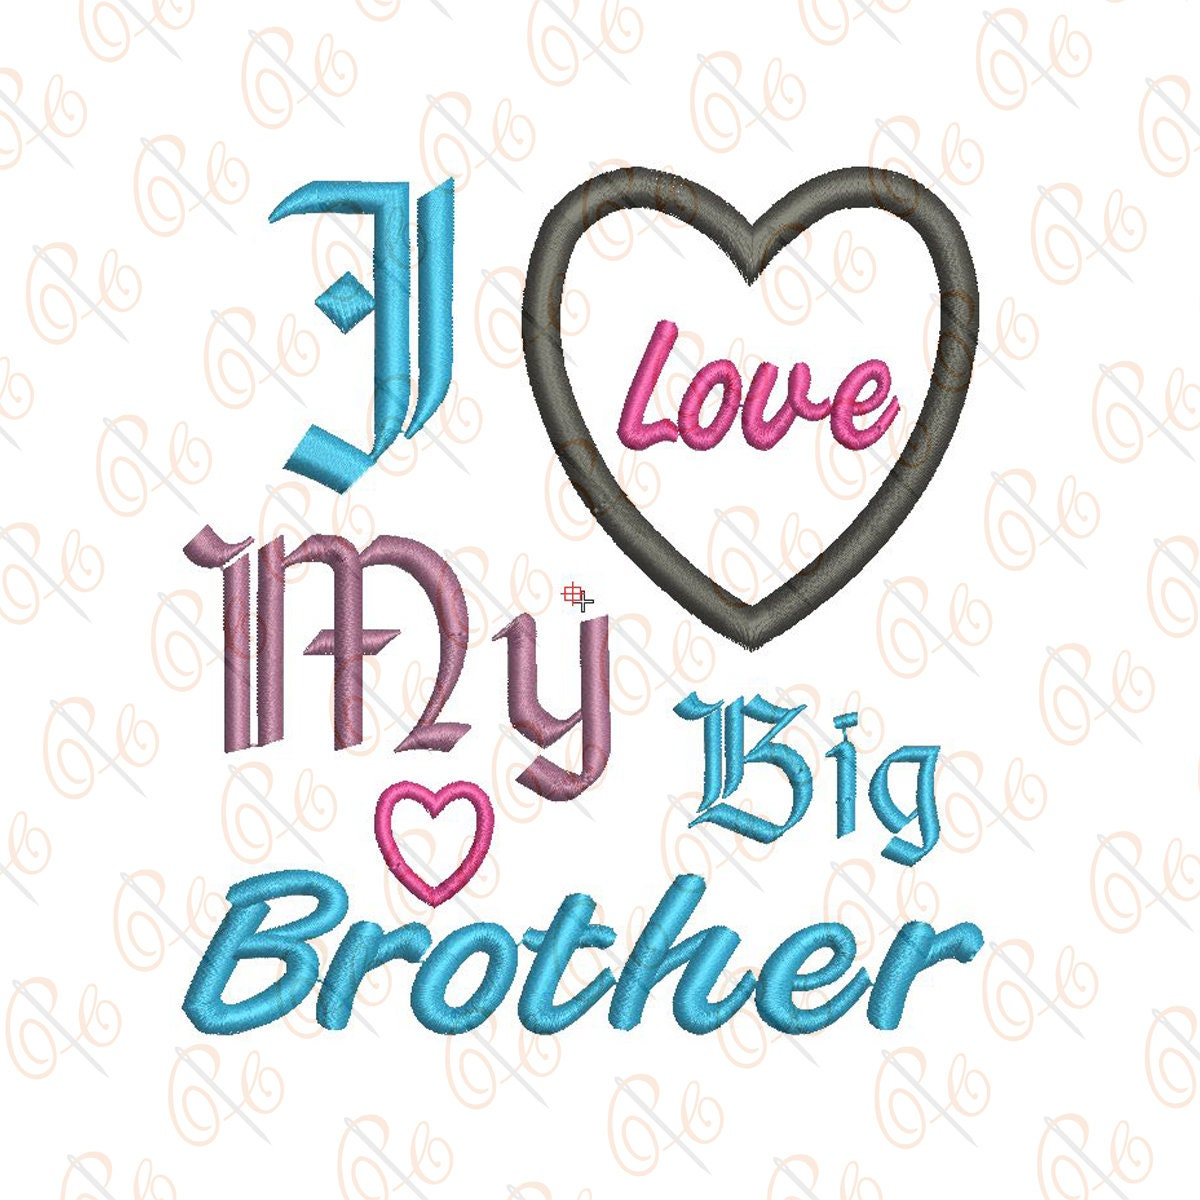 24de3321c I Love My Big Brother Embroidery Design 4x4 5x7 INSTANT | Etsy